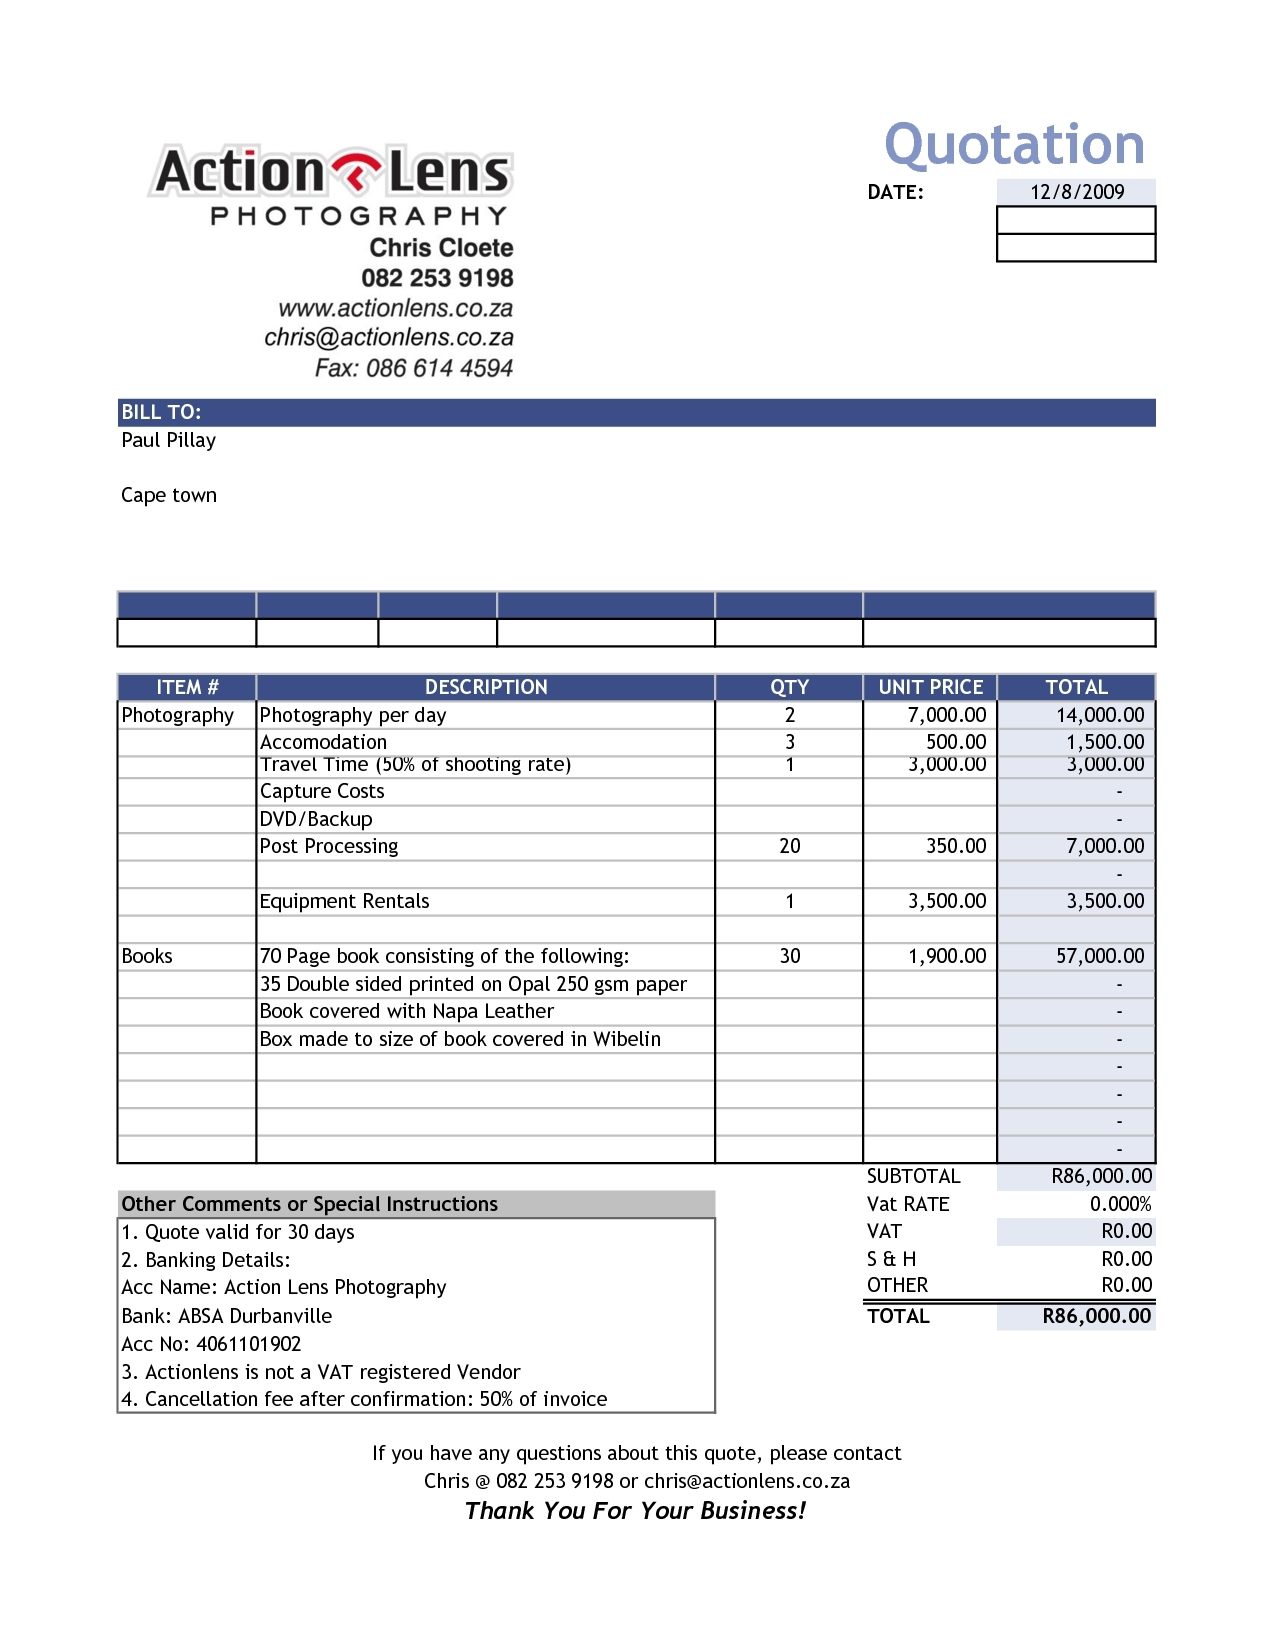 excel sales invoice template invoice template ideas a sales invoice